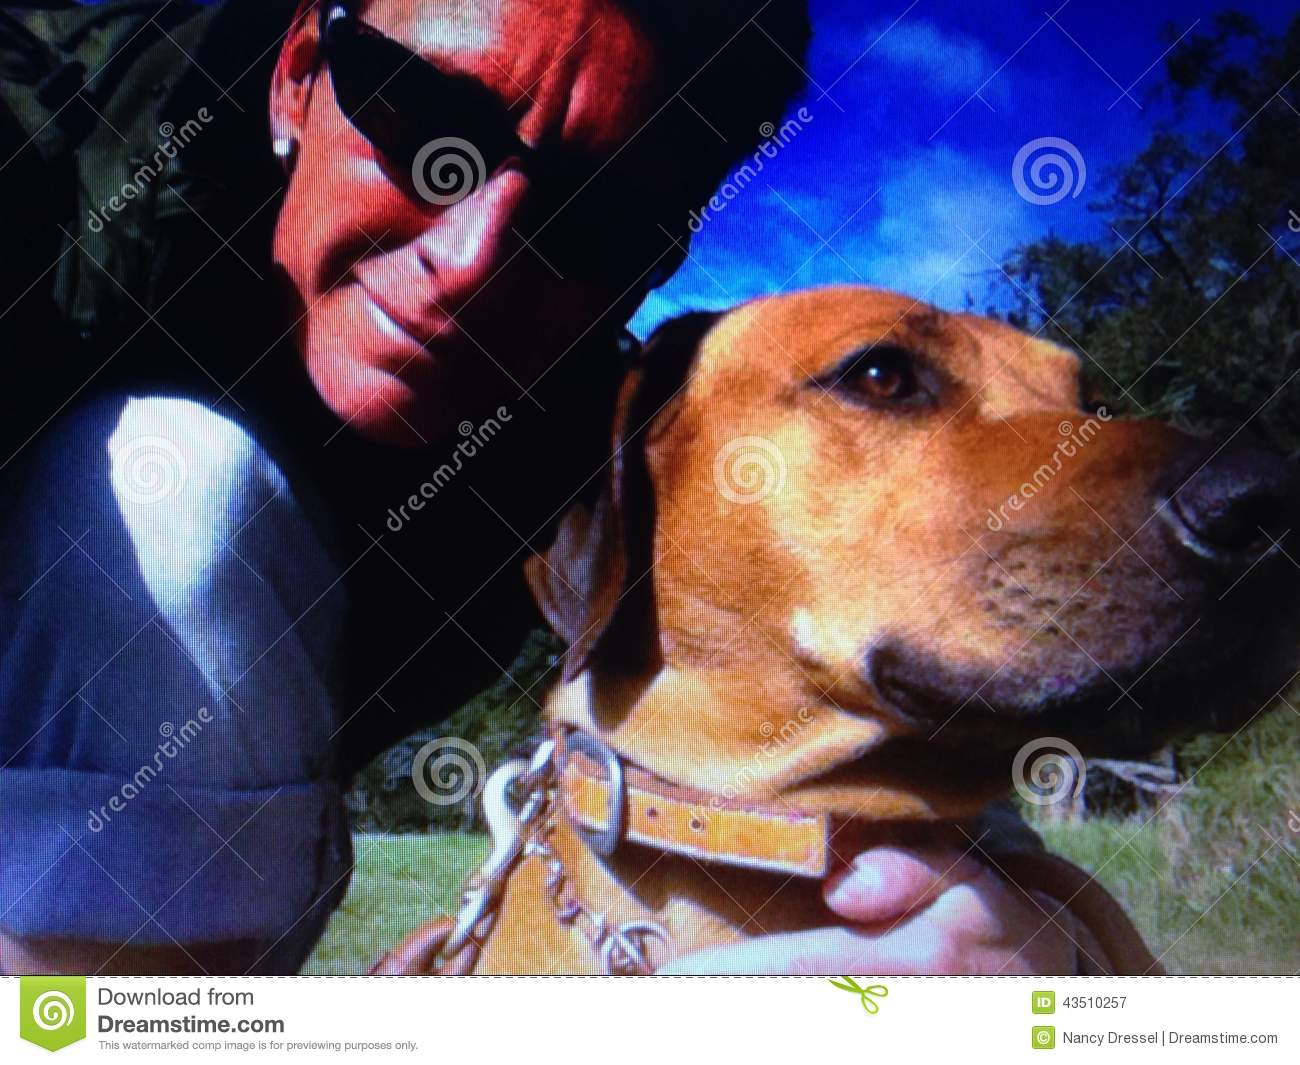 Selfie of me and my dog